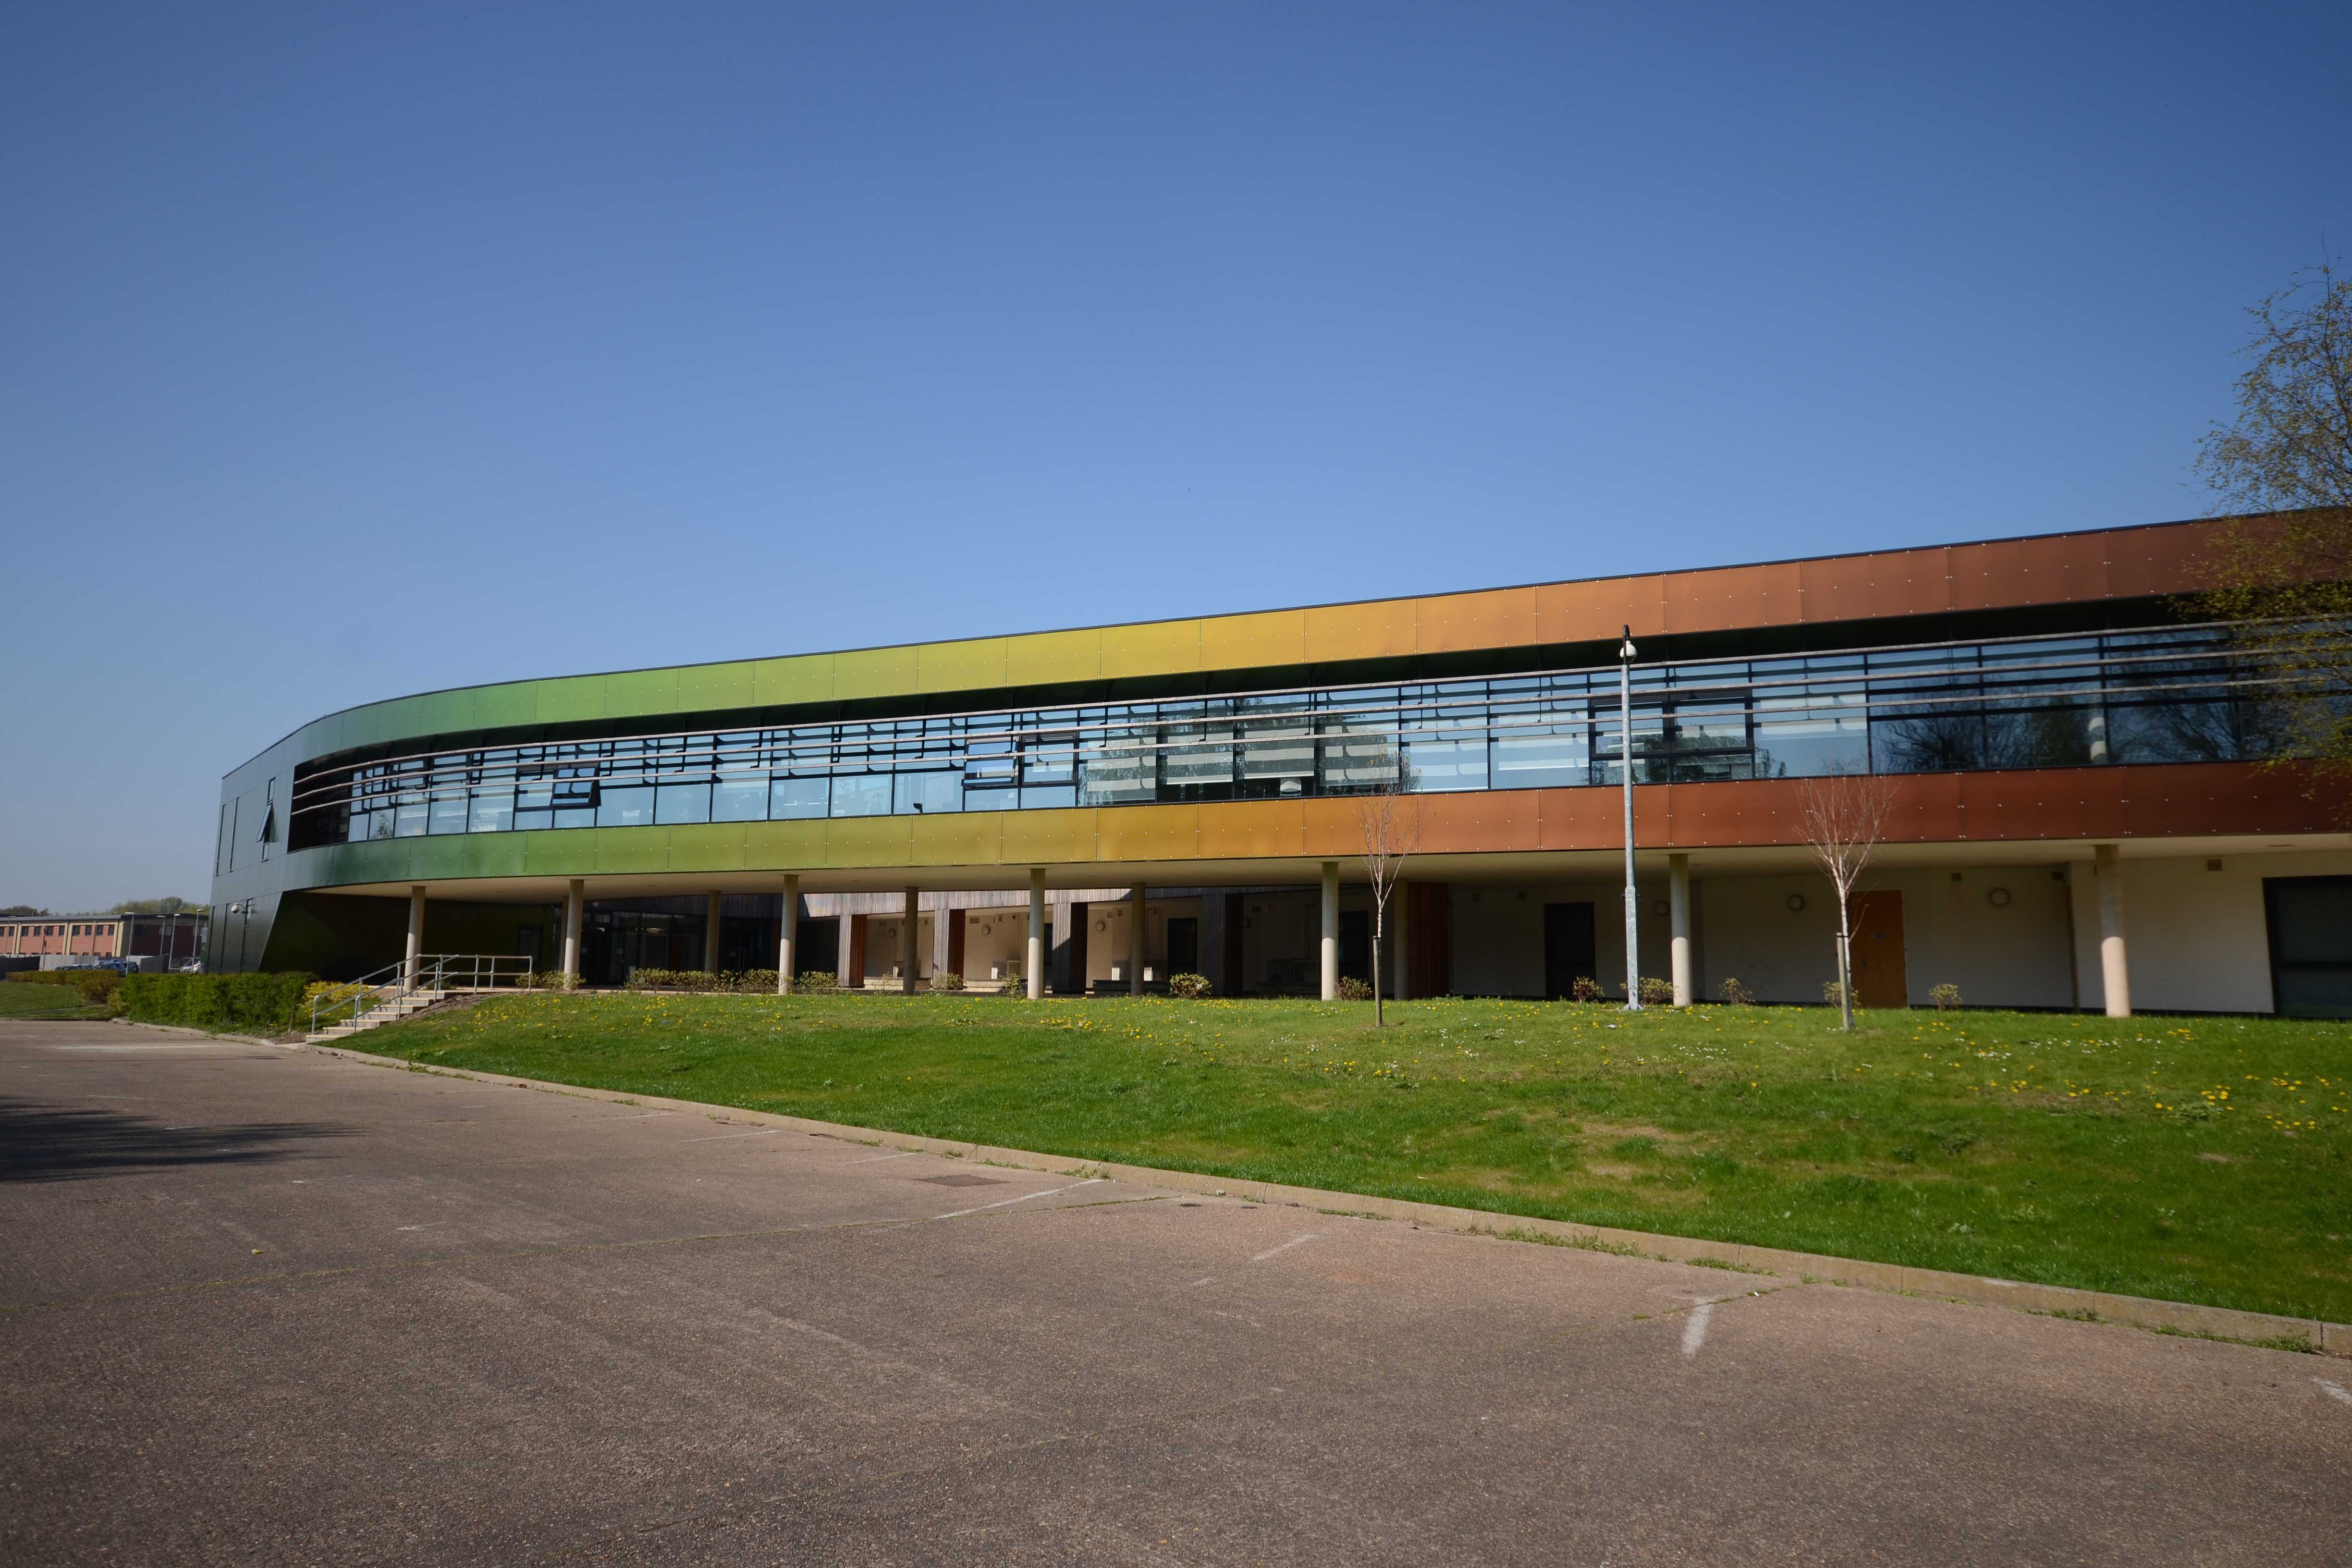 Image of long copper and green coloured building